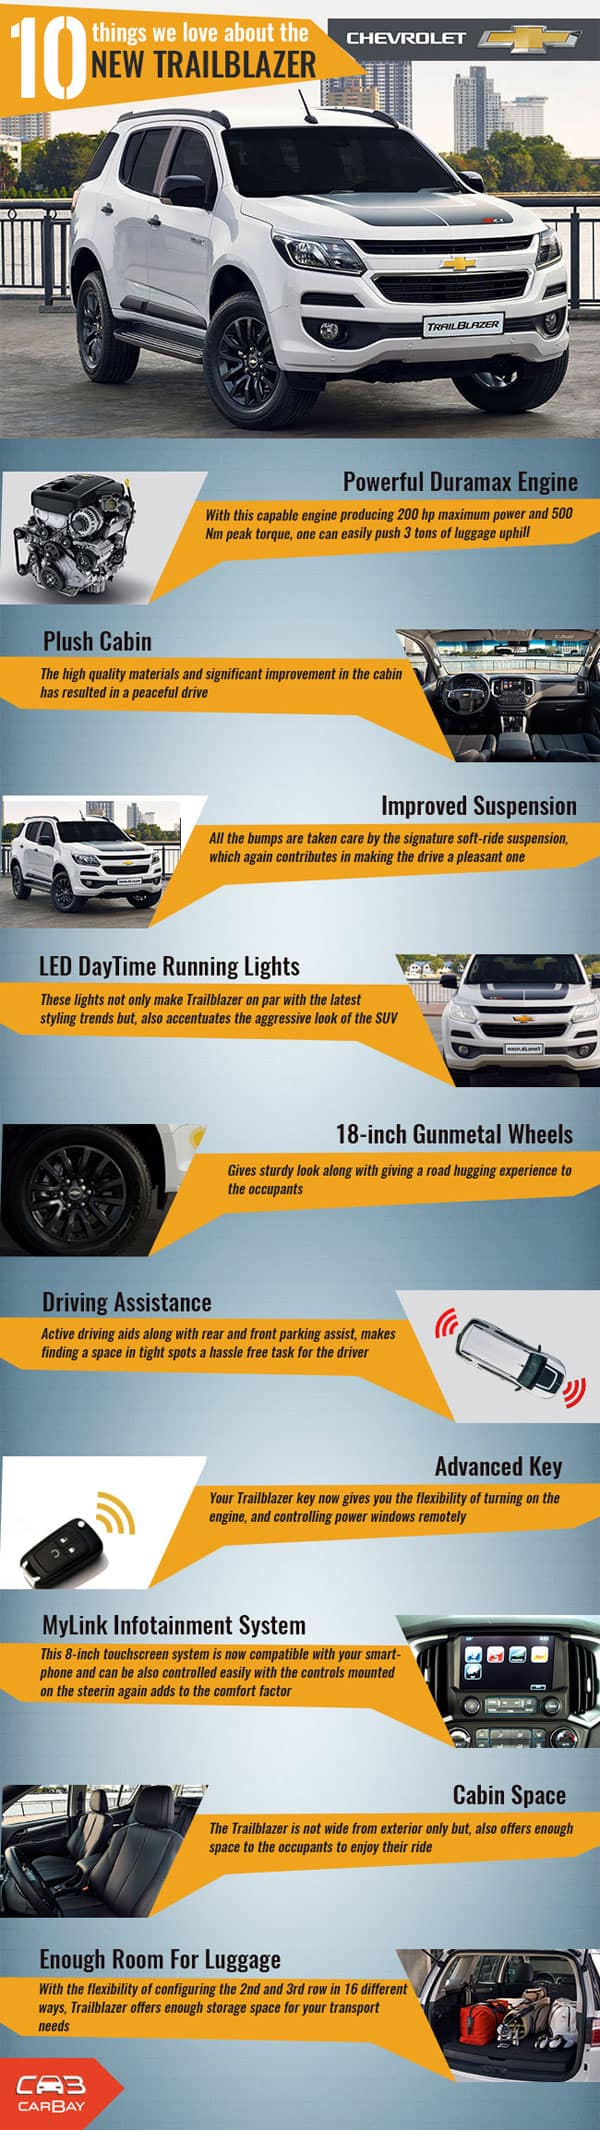 10 Best Features of the SUV – Chevrolet Trailblazer